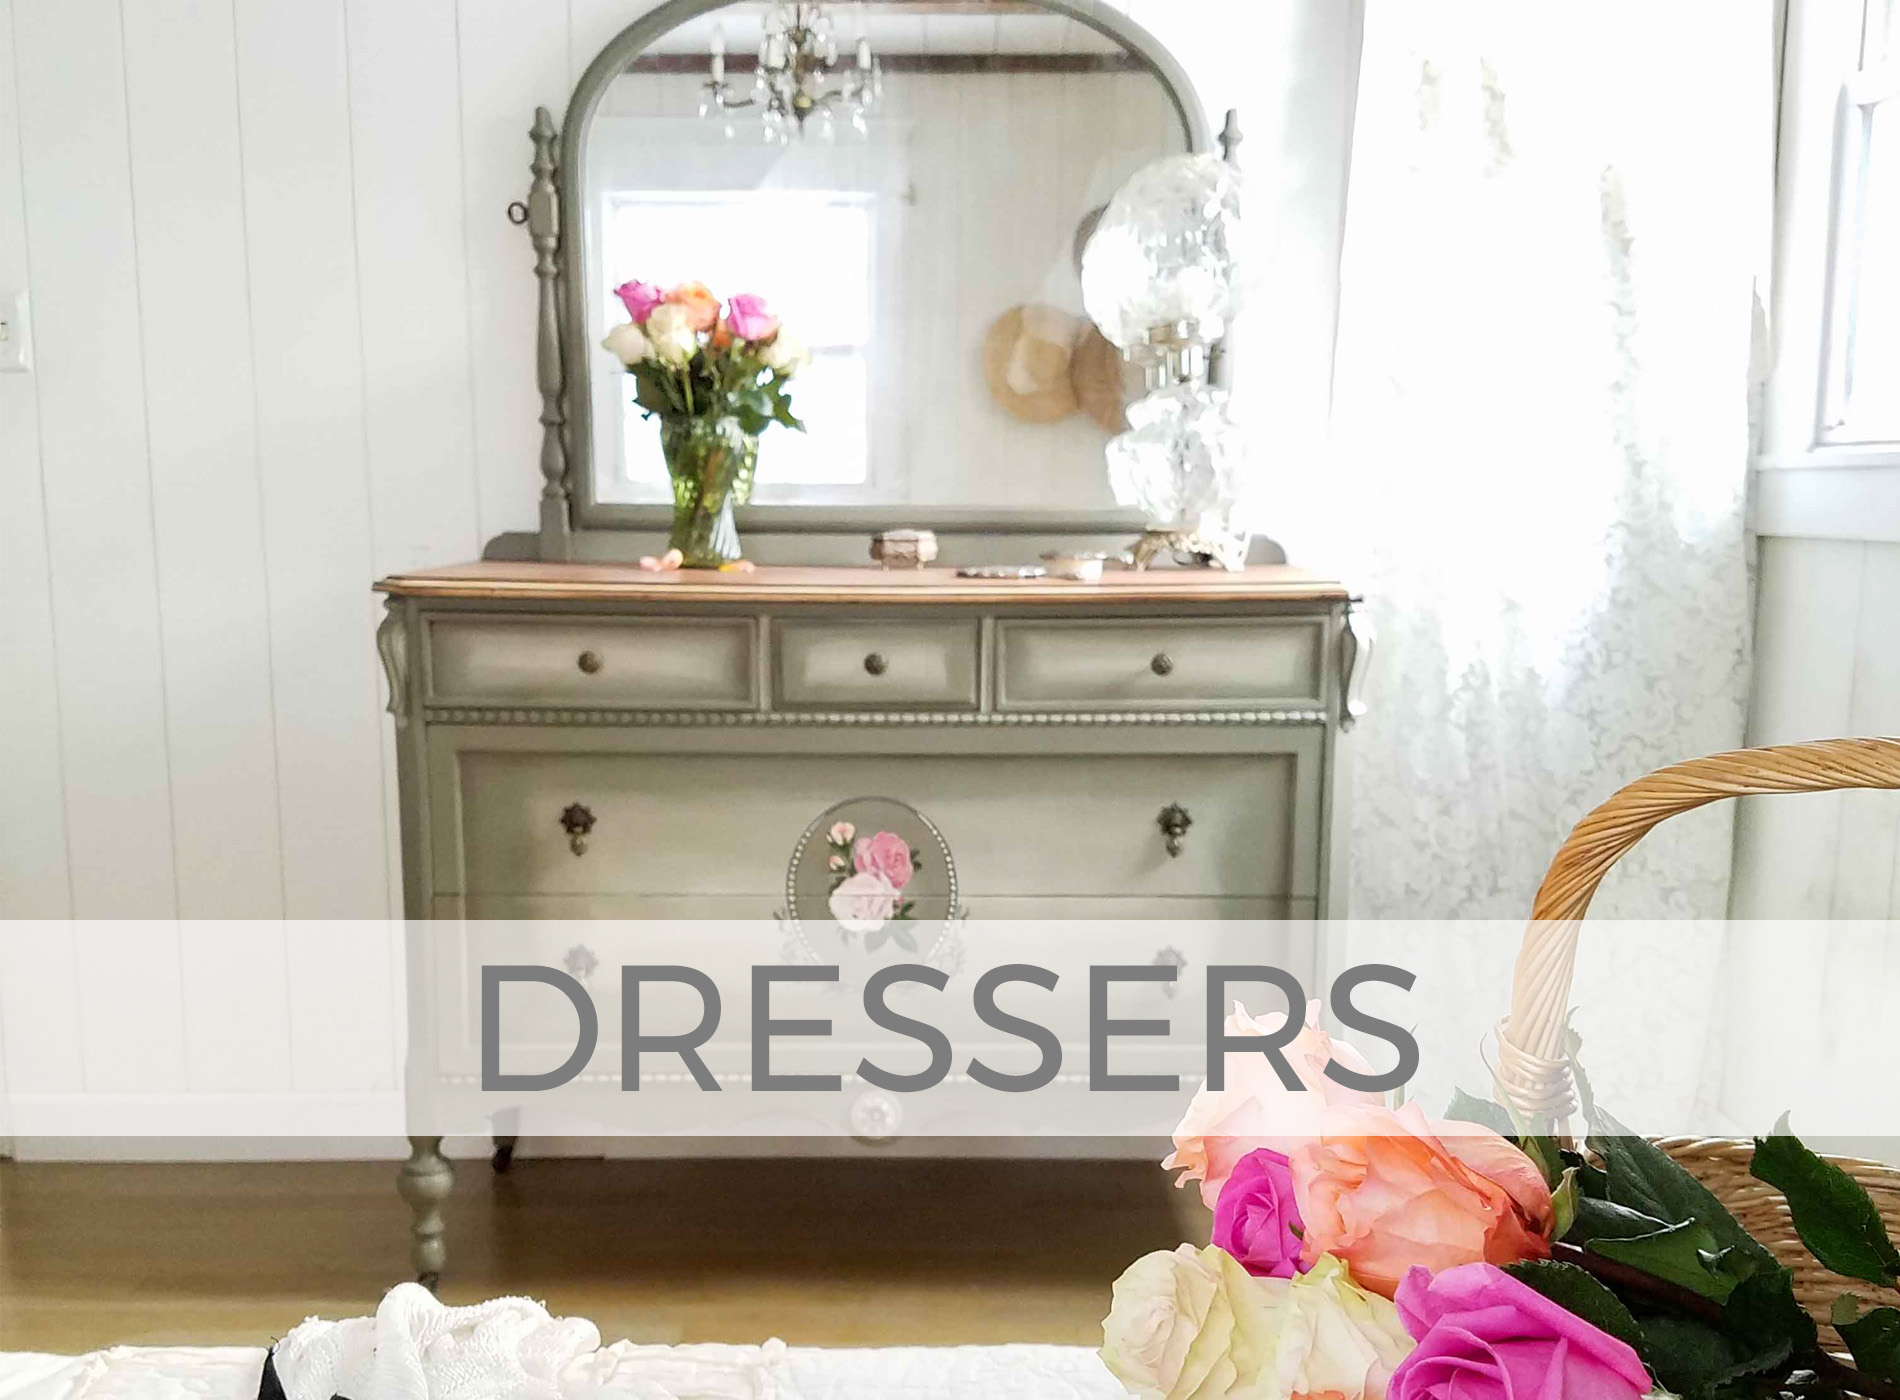 Dressers by Larissa of Prodigal Pieces | prodigalpieces.com